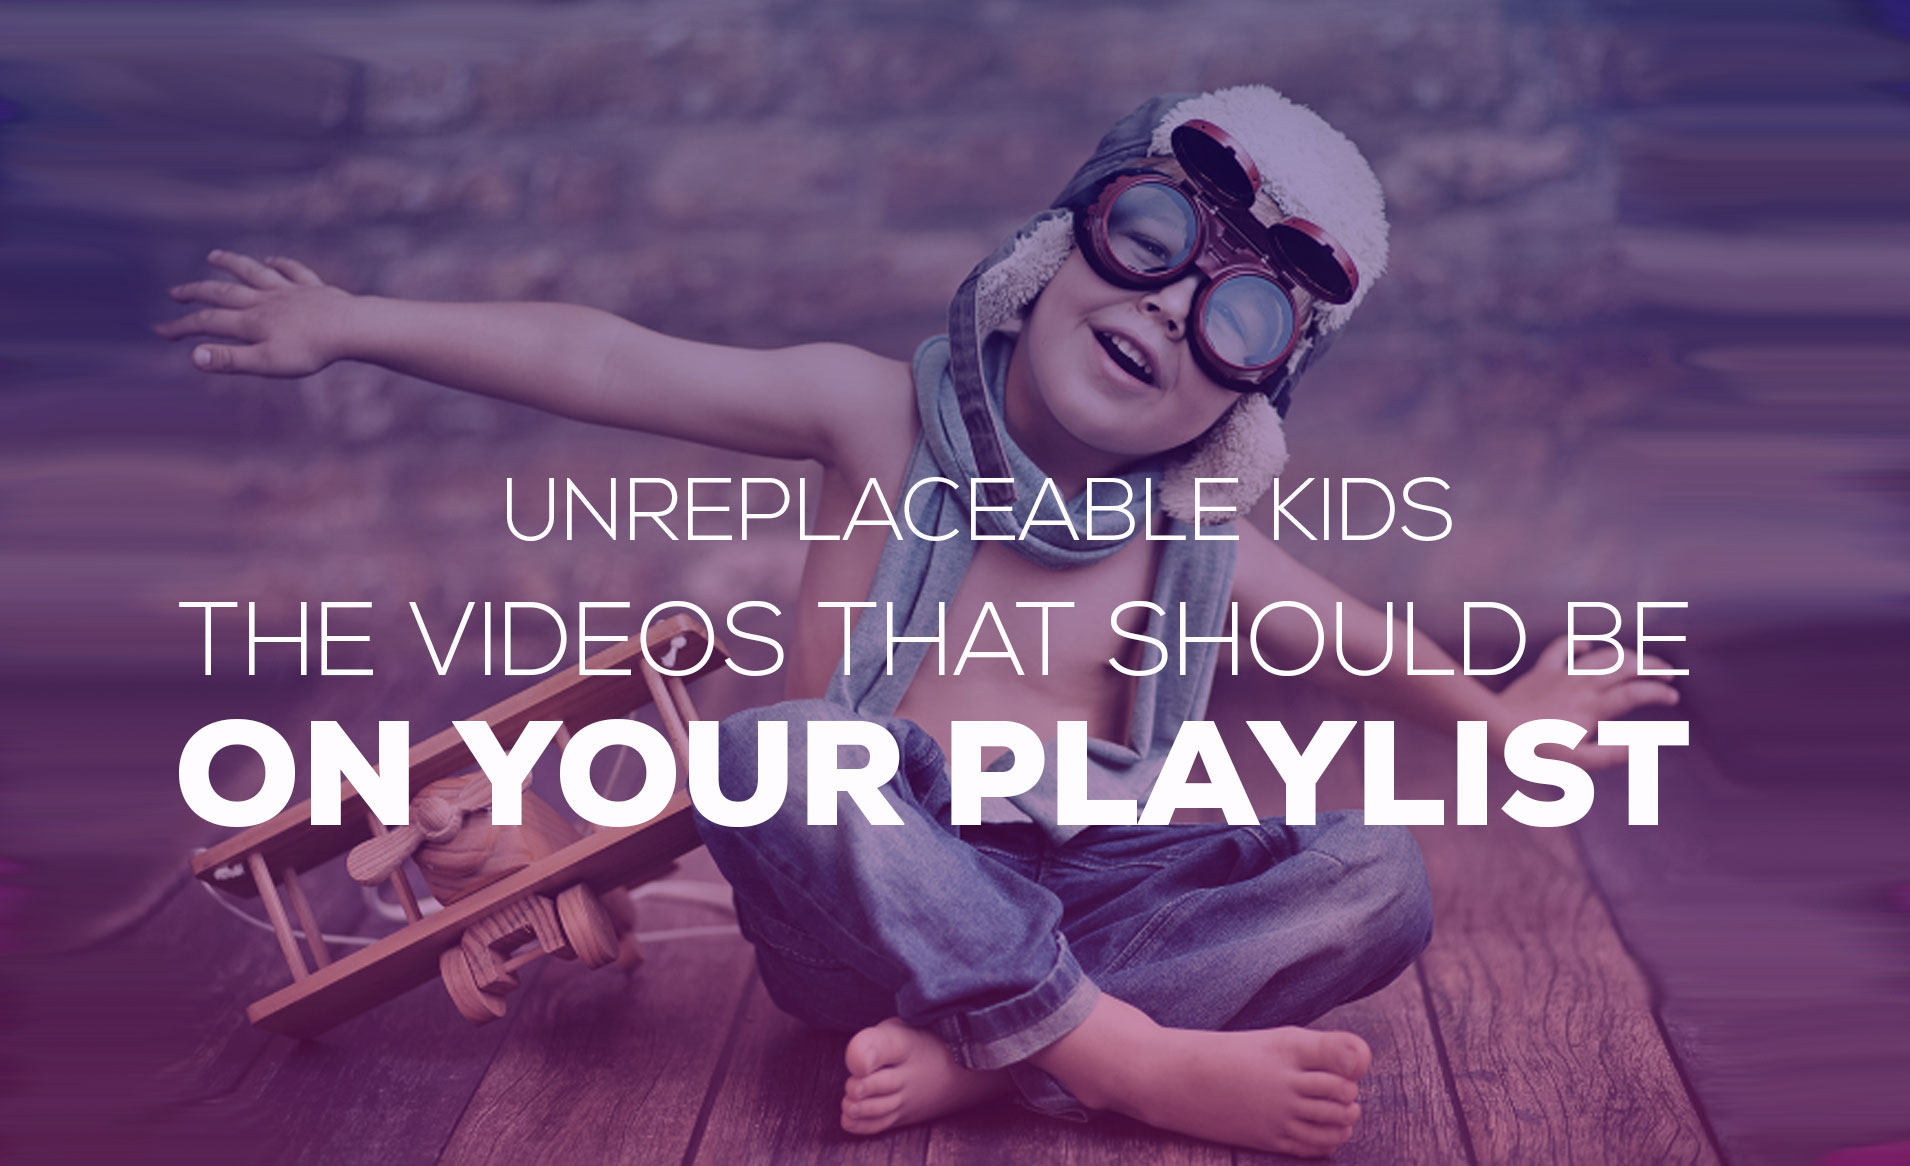 Unreplaceable kids videos choice Preparing today's children for tomorrow.